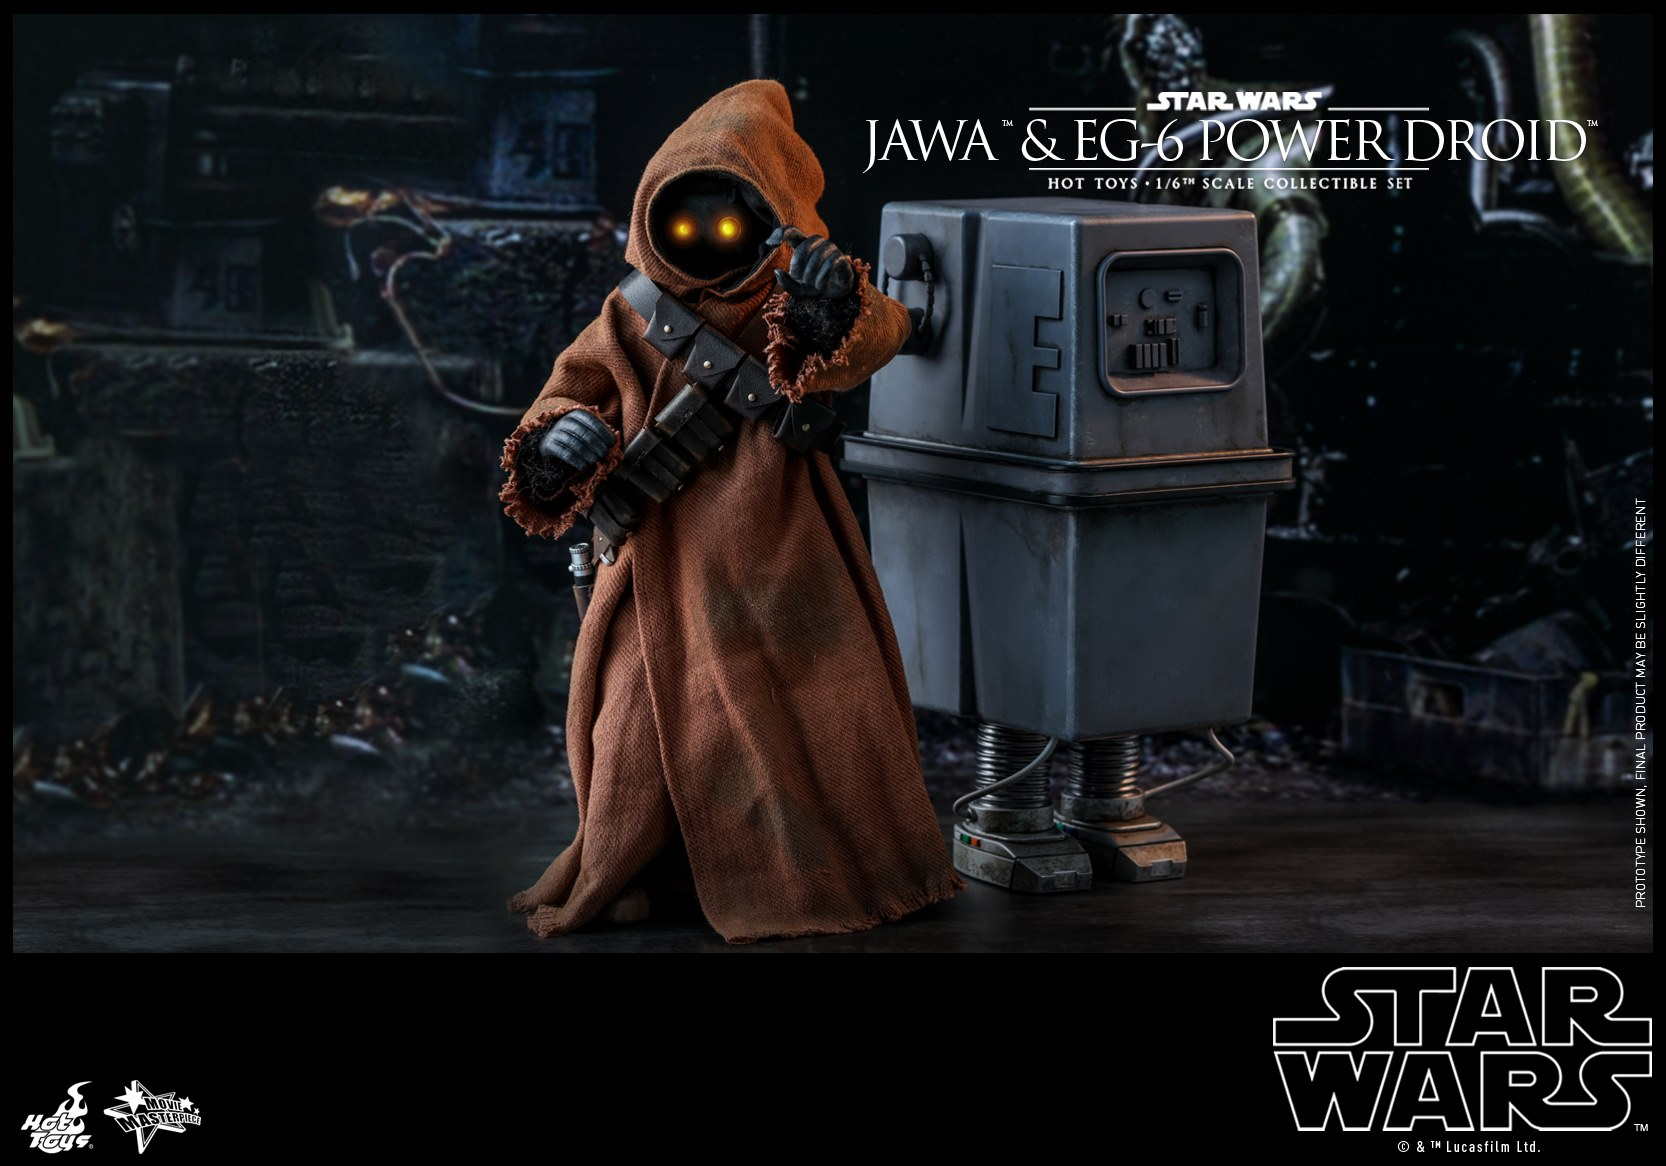 Pre-Order Hot Toys Star Wars Jawa & EG-6 Power Droid Figure Set